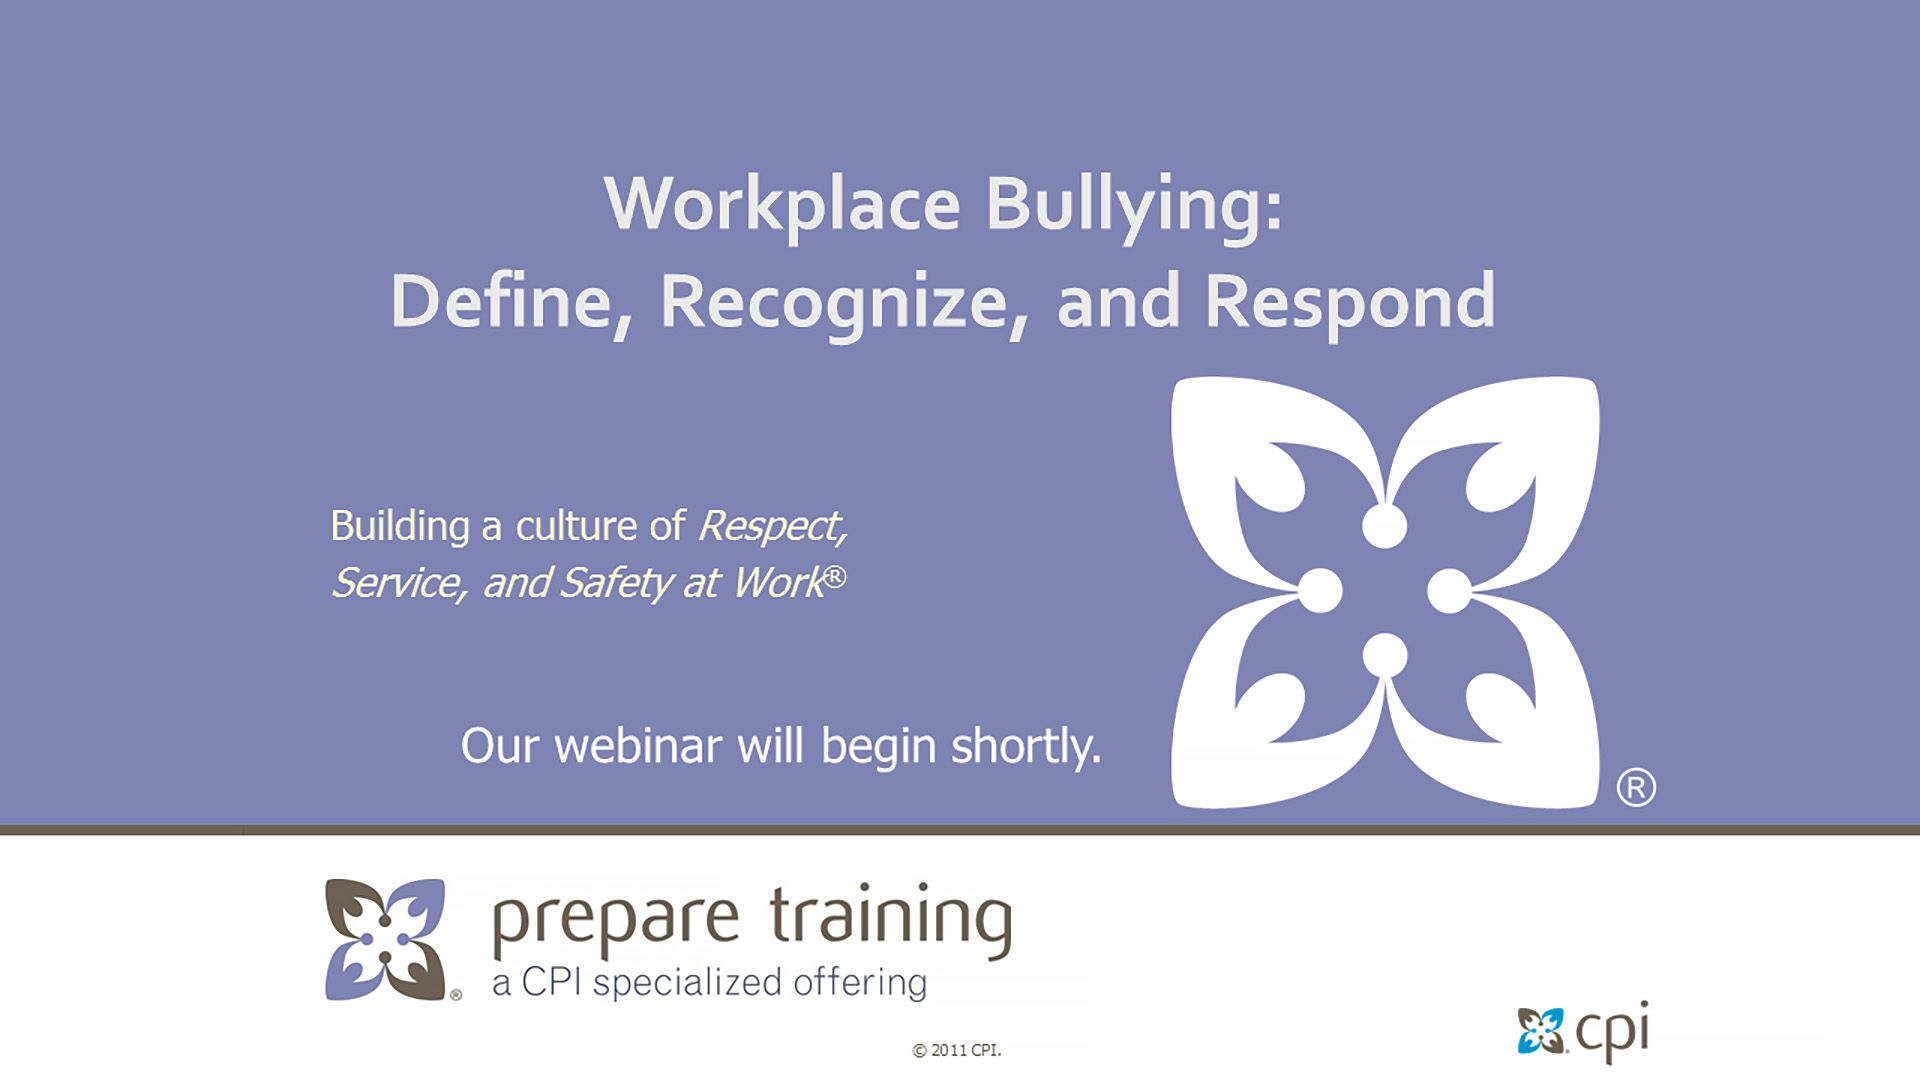 Workplace Bullying: Define, Recognize, and Respond